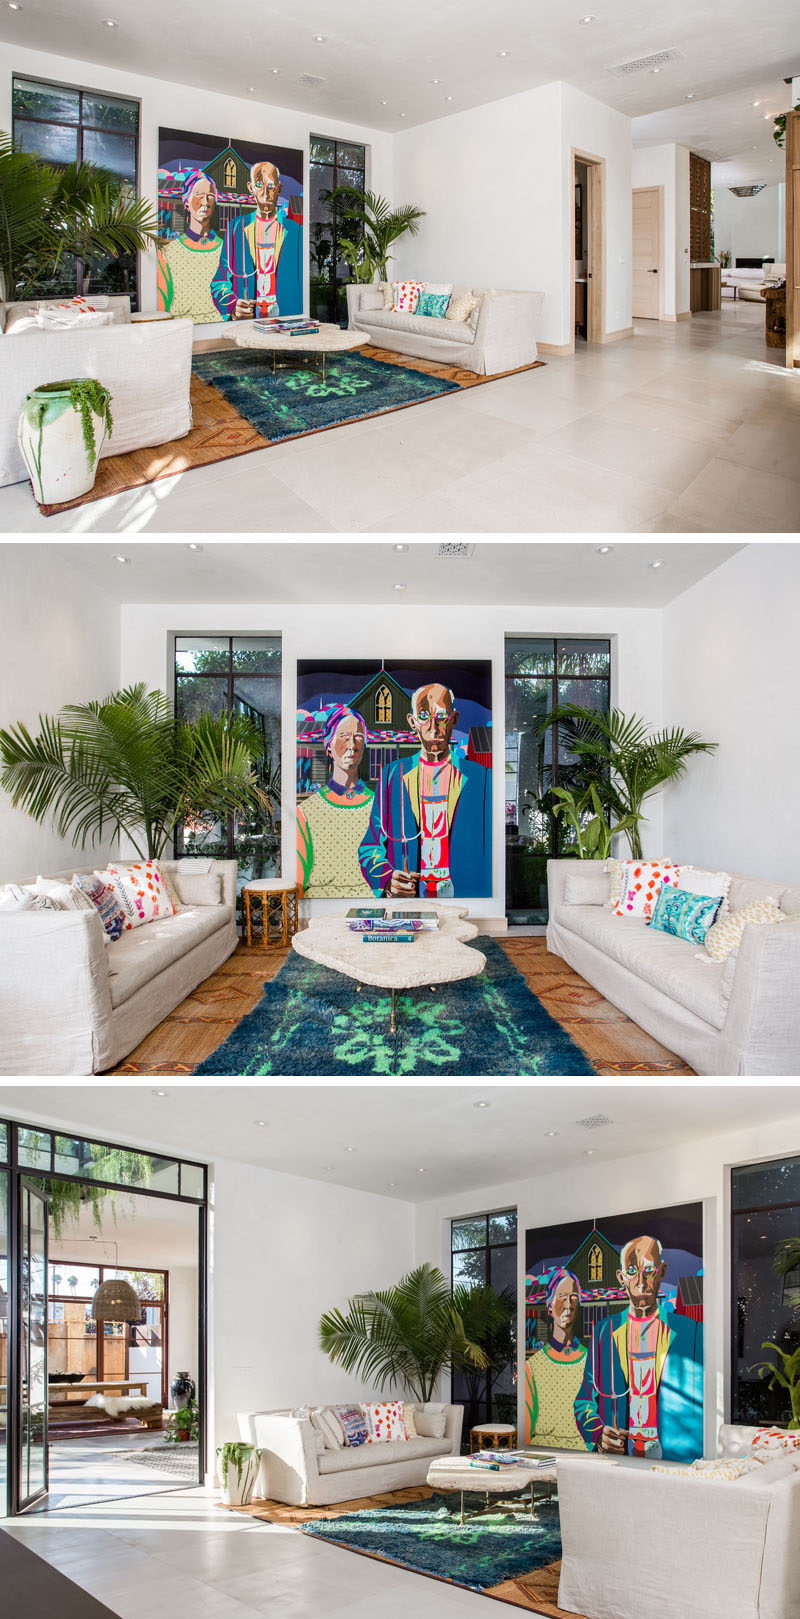 This lounge area is anchored by the large rugs on the floor and the artwork positioned between the two windows.